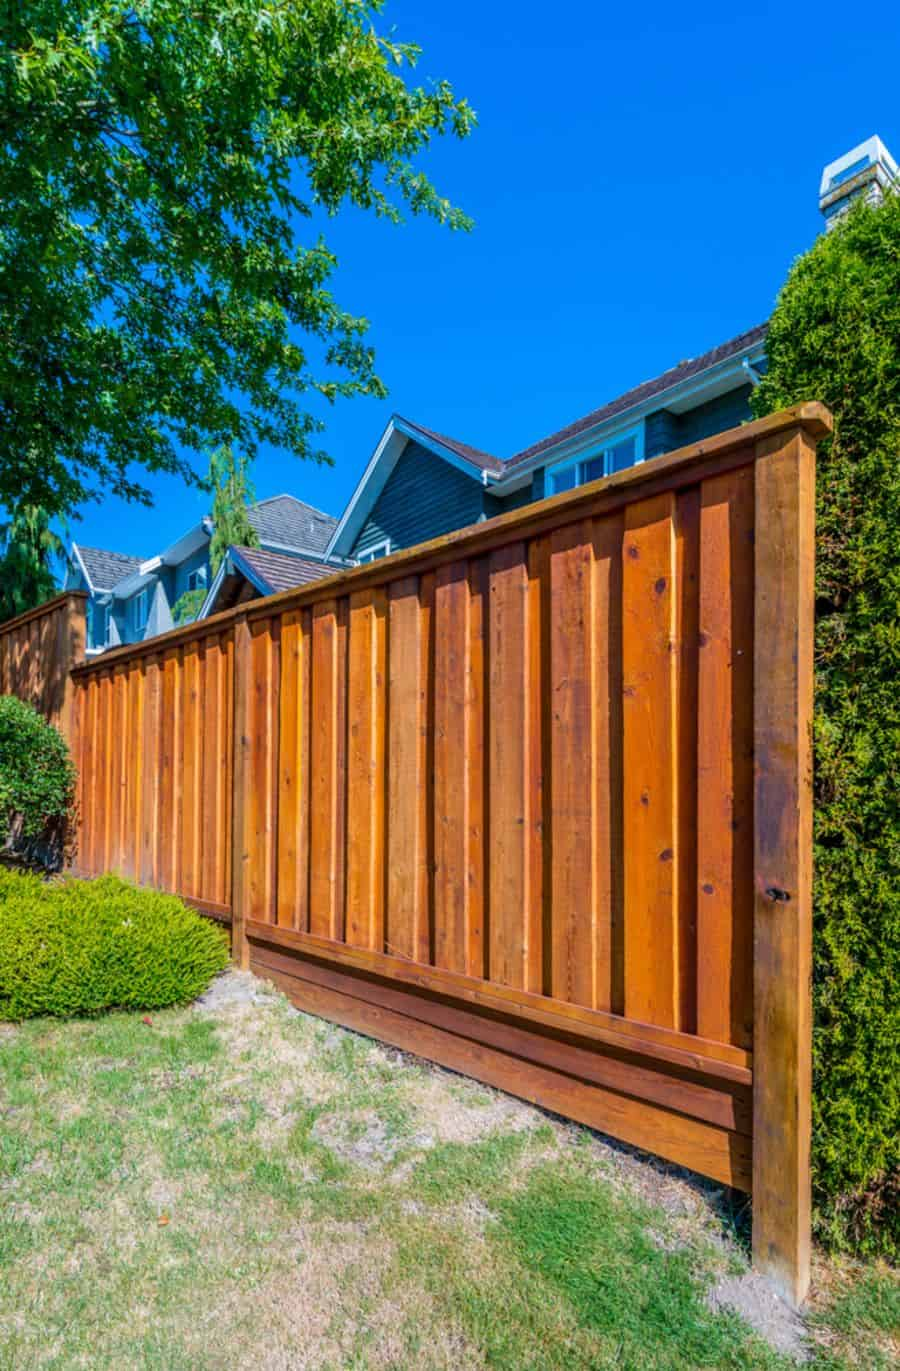 The 80 Best Wood Fence Ideas - Landscaping Inspiration on Decorations For Privacy Fence id=61201